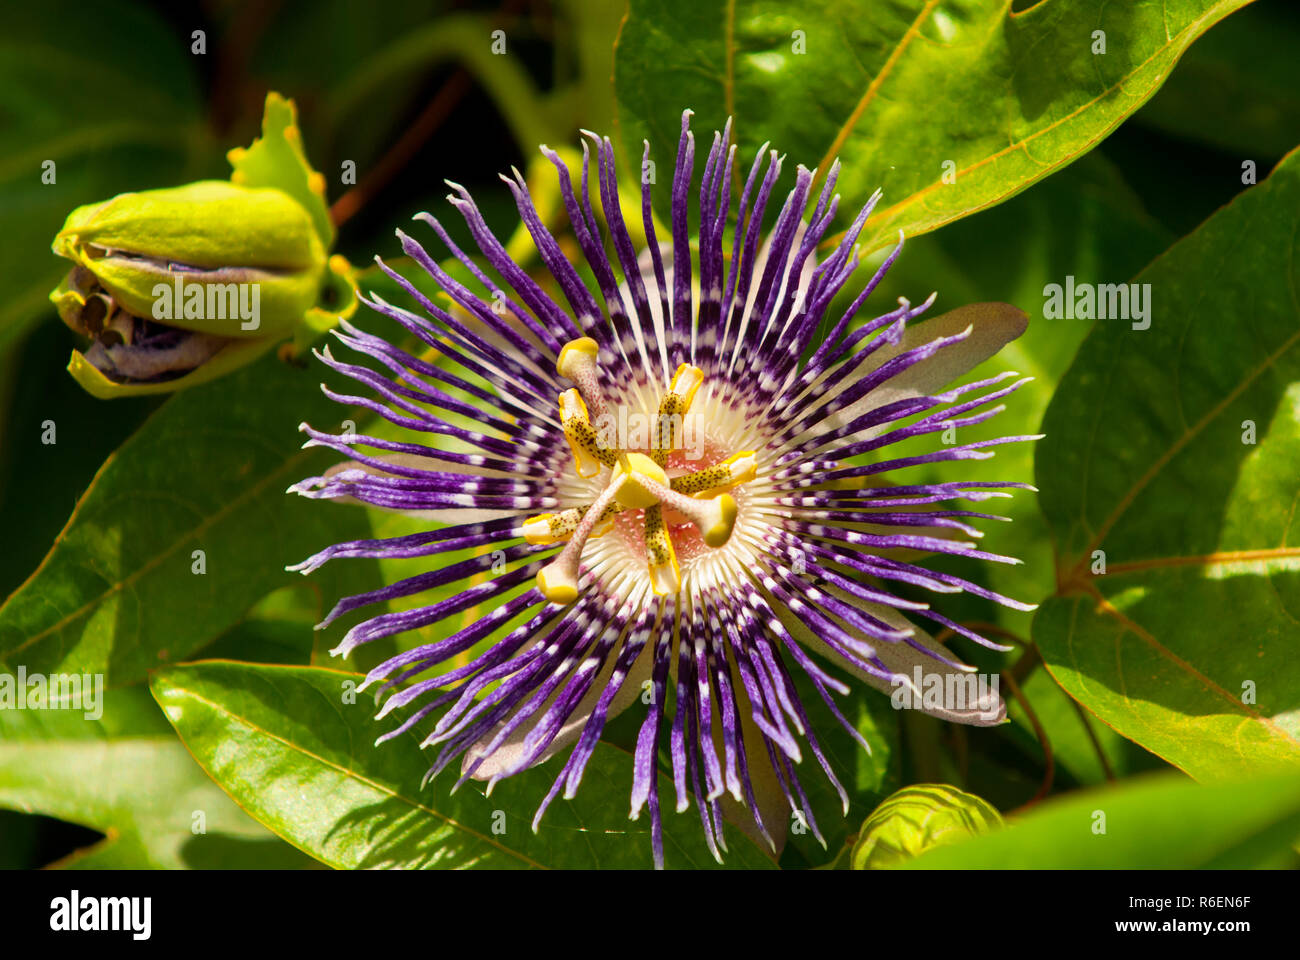 Passiflora Incarnata Commonly Purple Passionflower Is A Fast